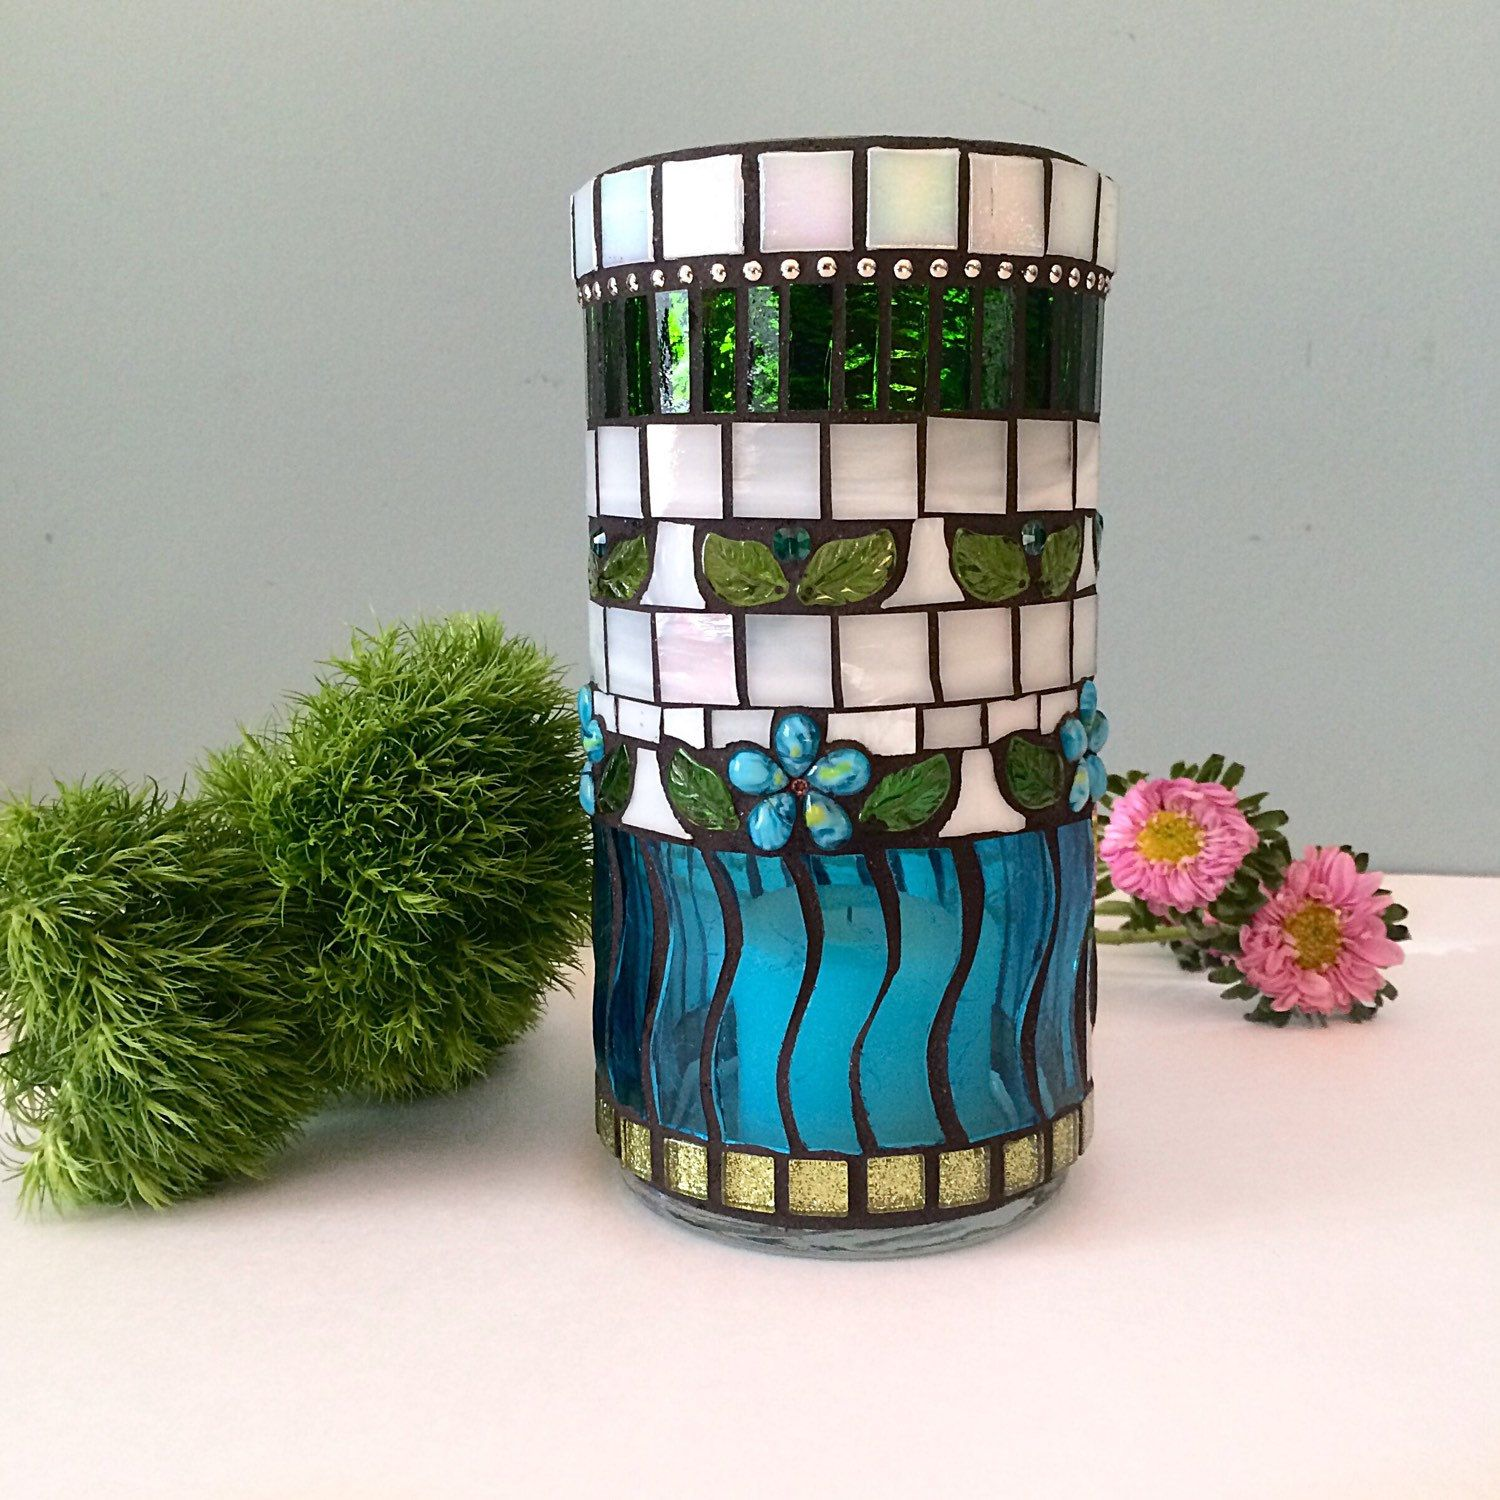 Mosaic vase Blue flower candle holder votive Island vacation beach house art Spring holiday celebration Easter decoration Mother's Day gifts by BellasArtMosaics on Etsy